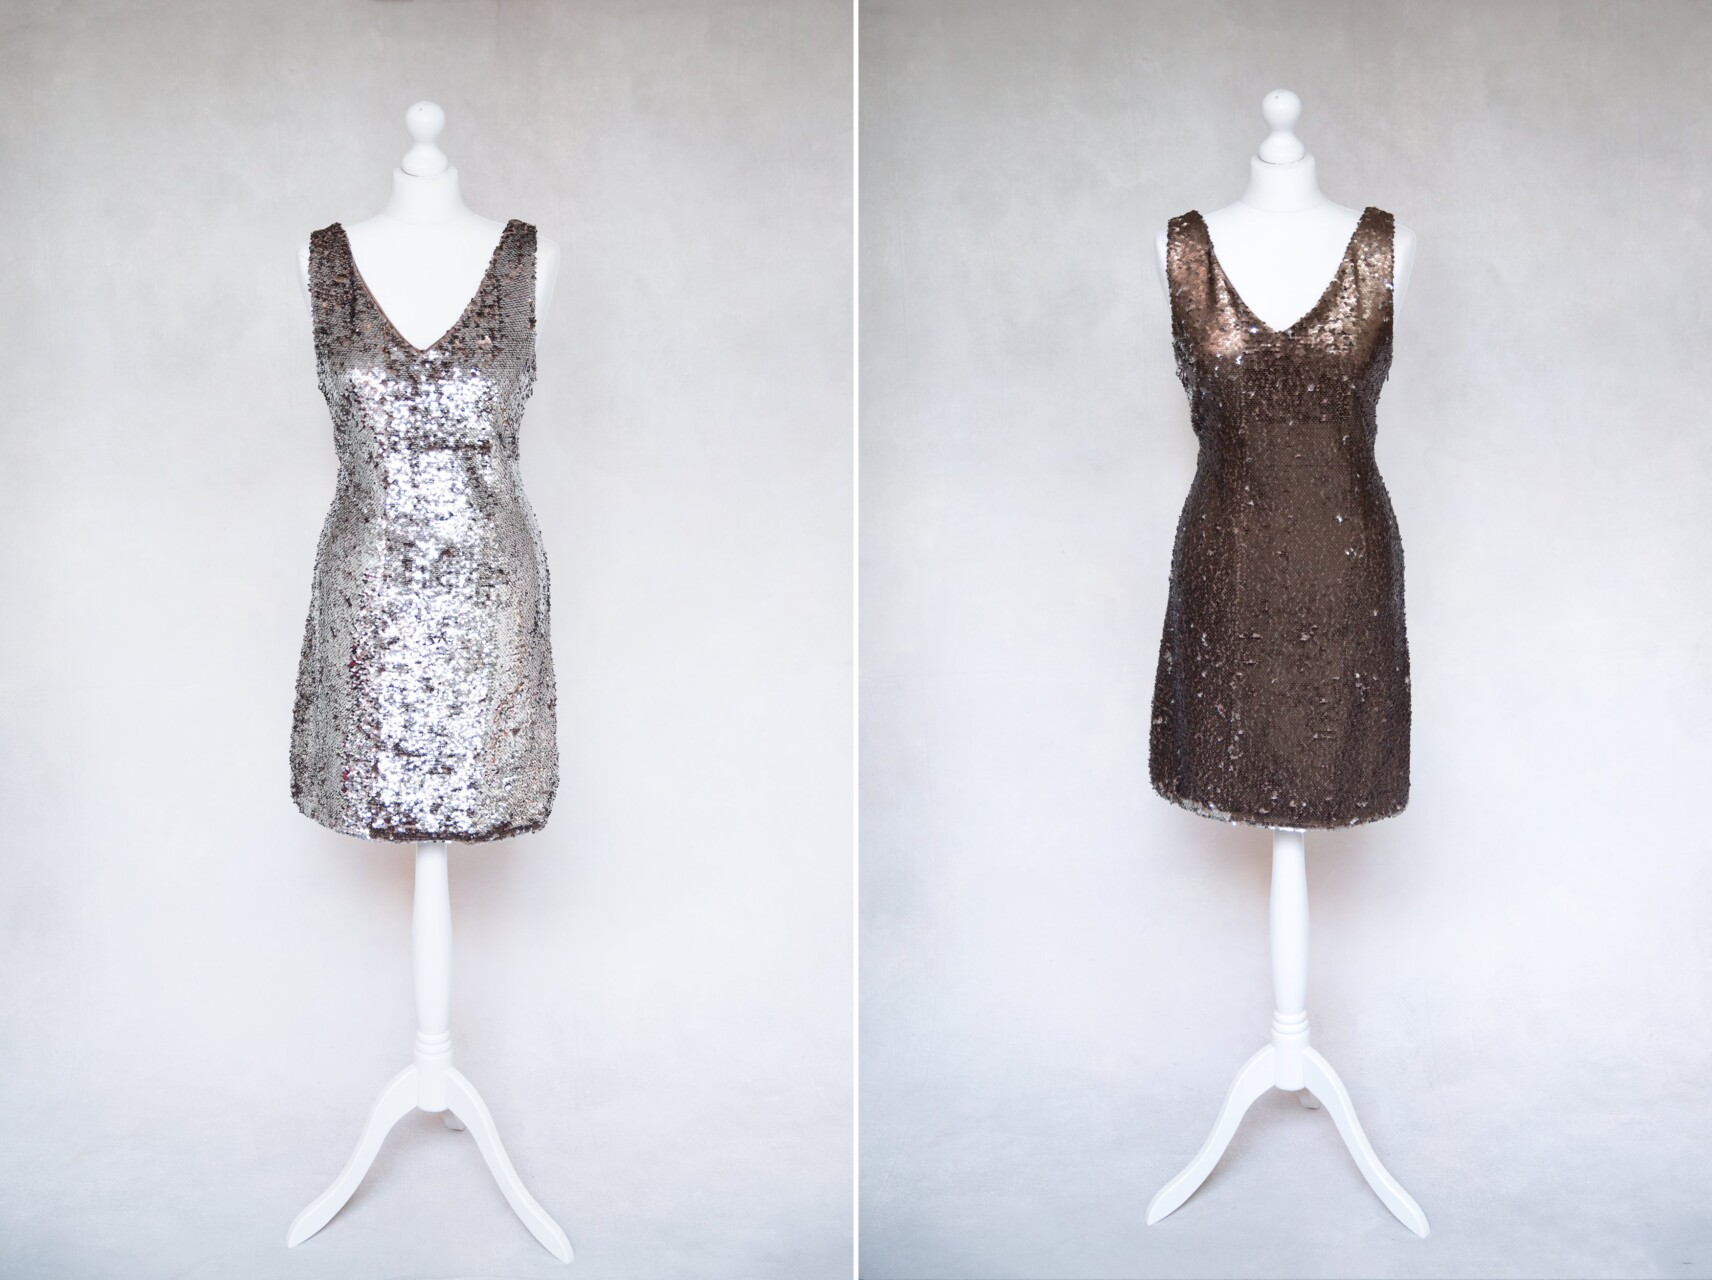 sparkly dresses and accessories for your glamorous portrait photoshoot - Viktoria Kuti Photography